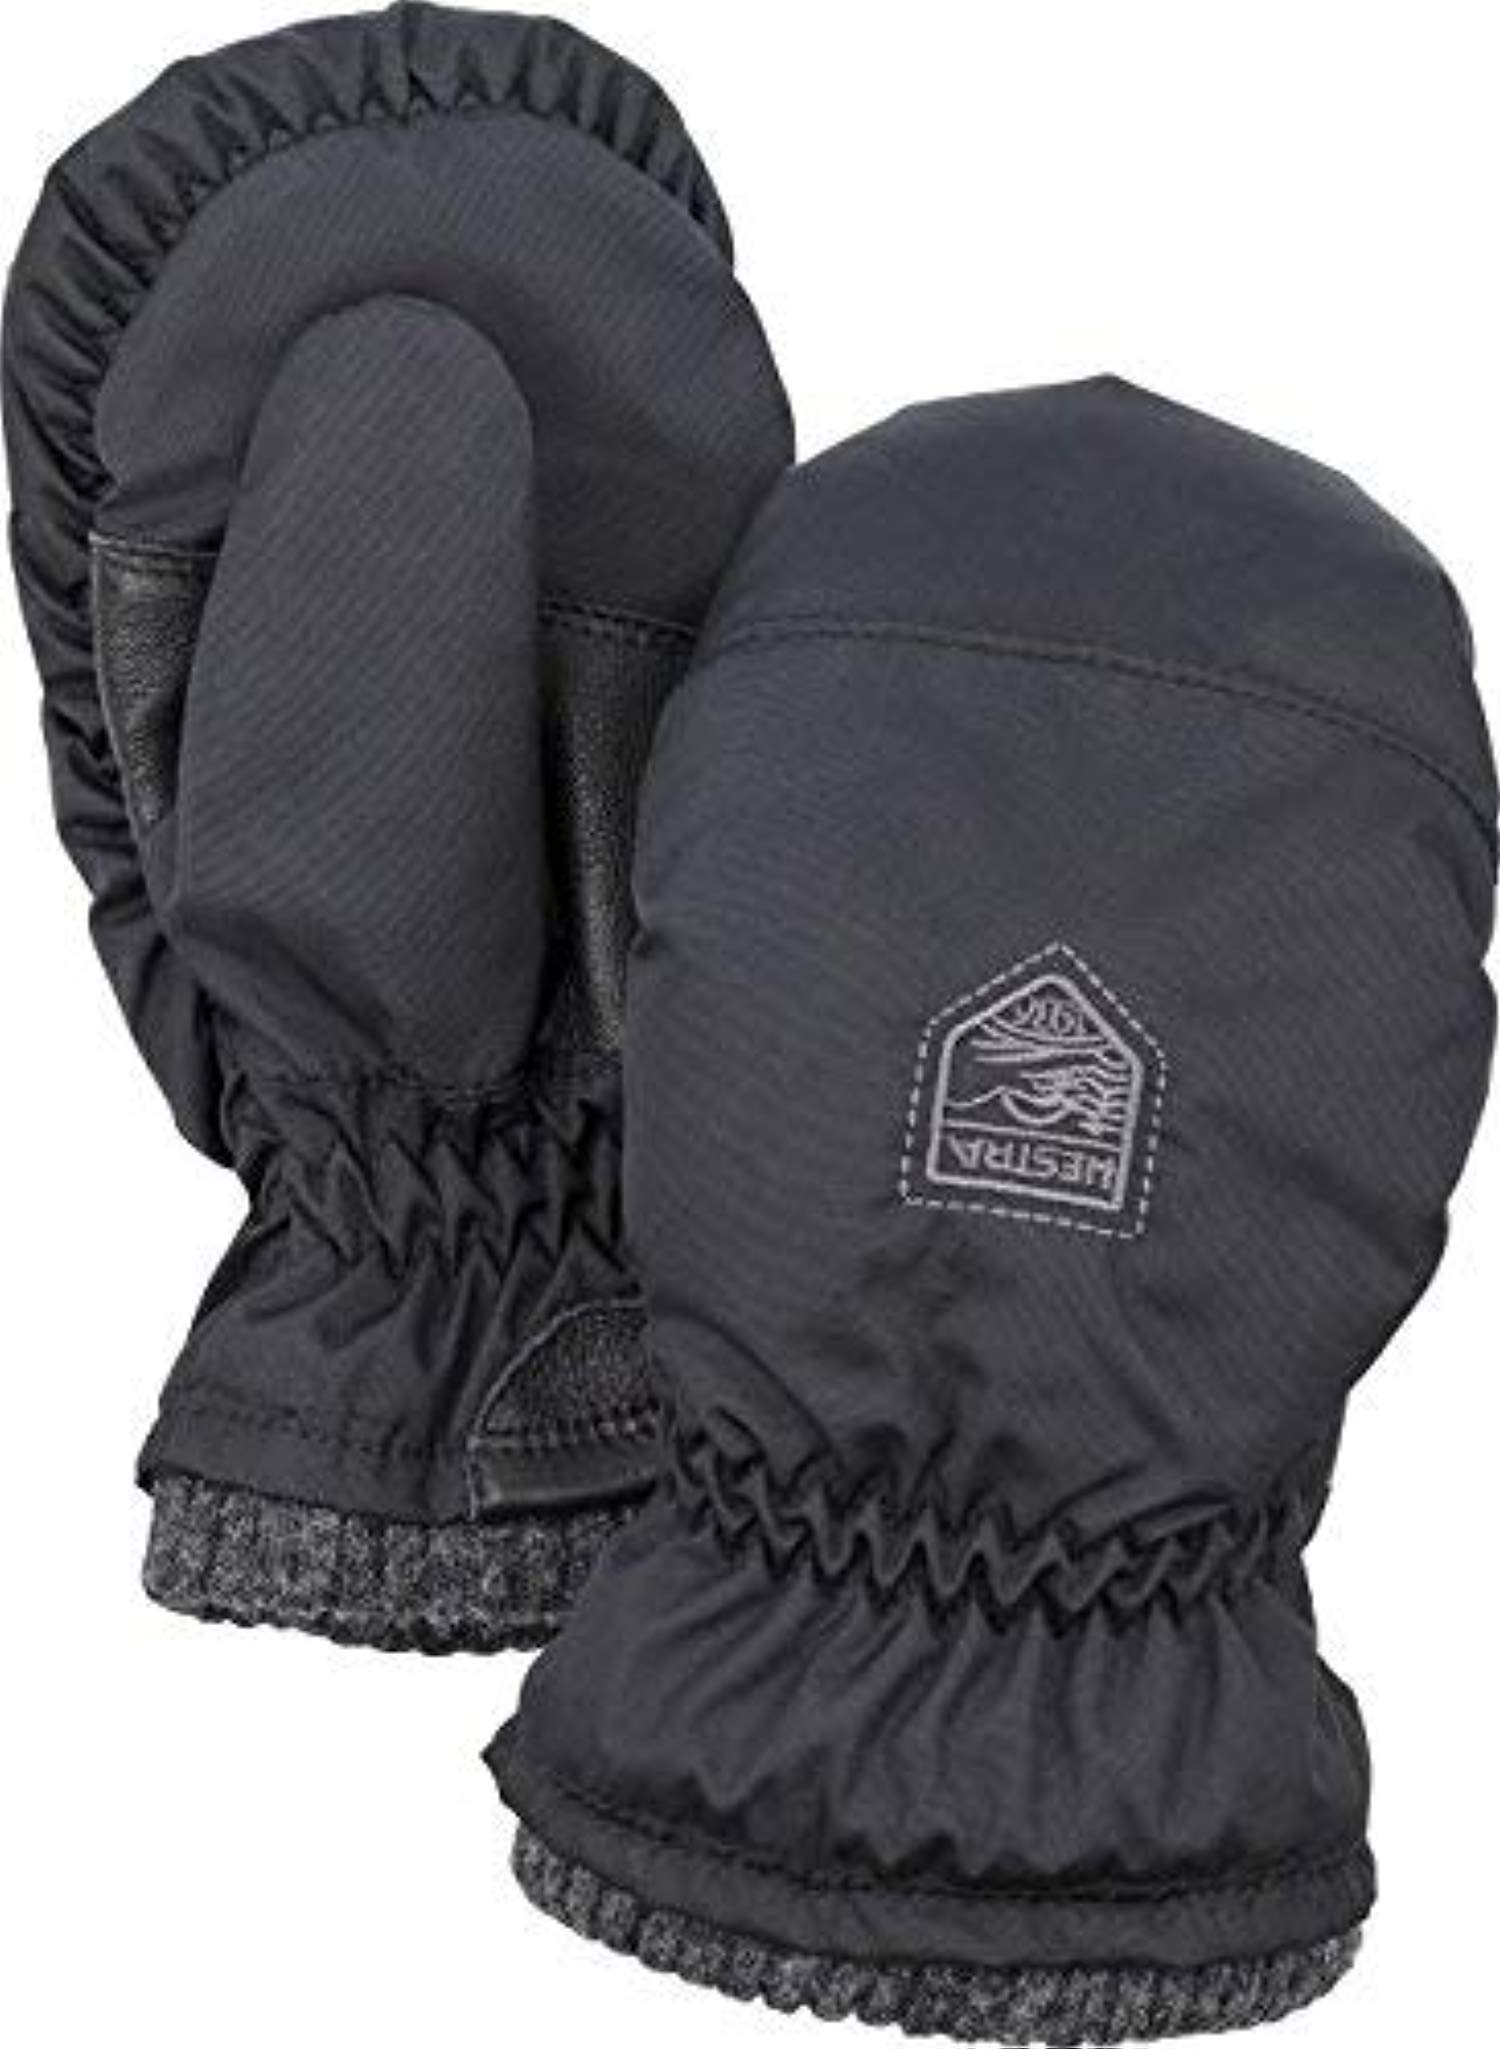 Winter Bundle: Hestra Youth My First Hestra - Mitts Black 1 & Knit Cap